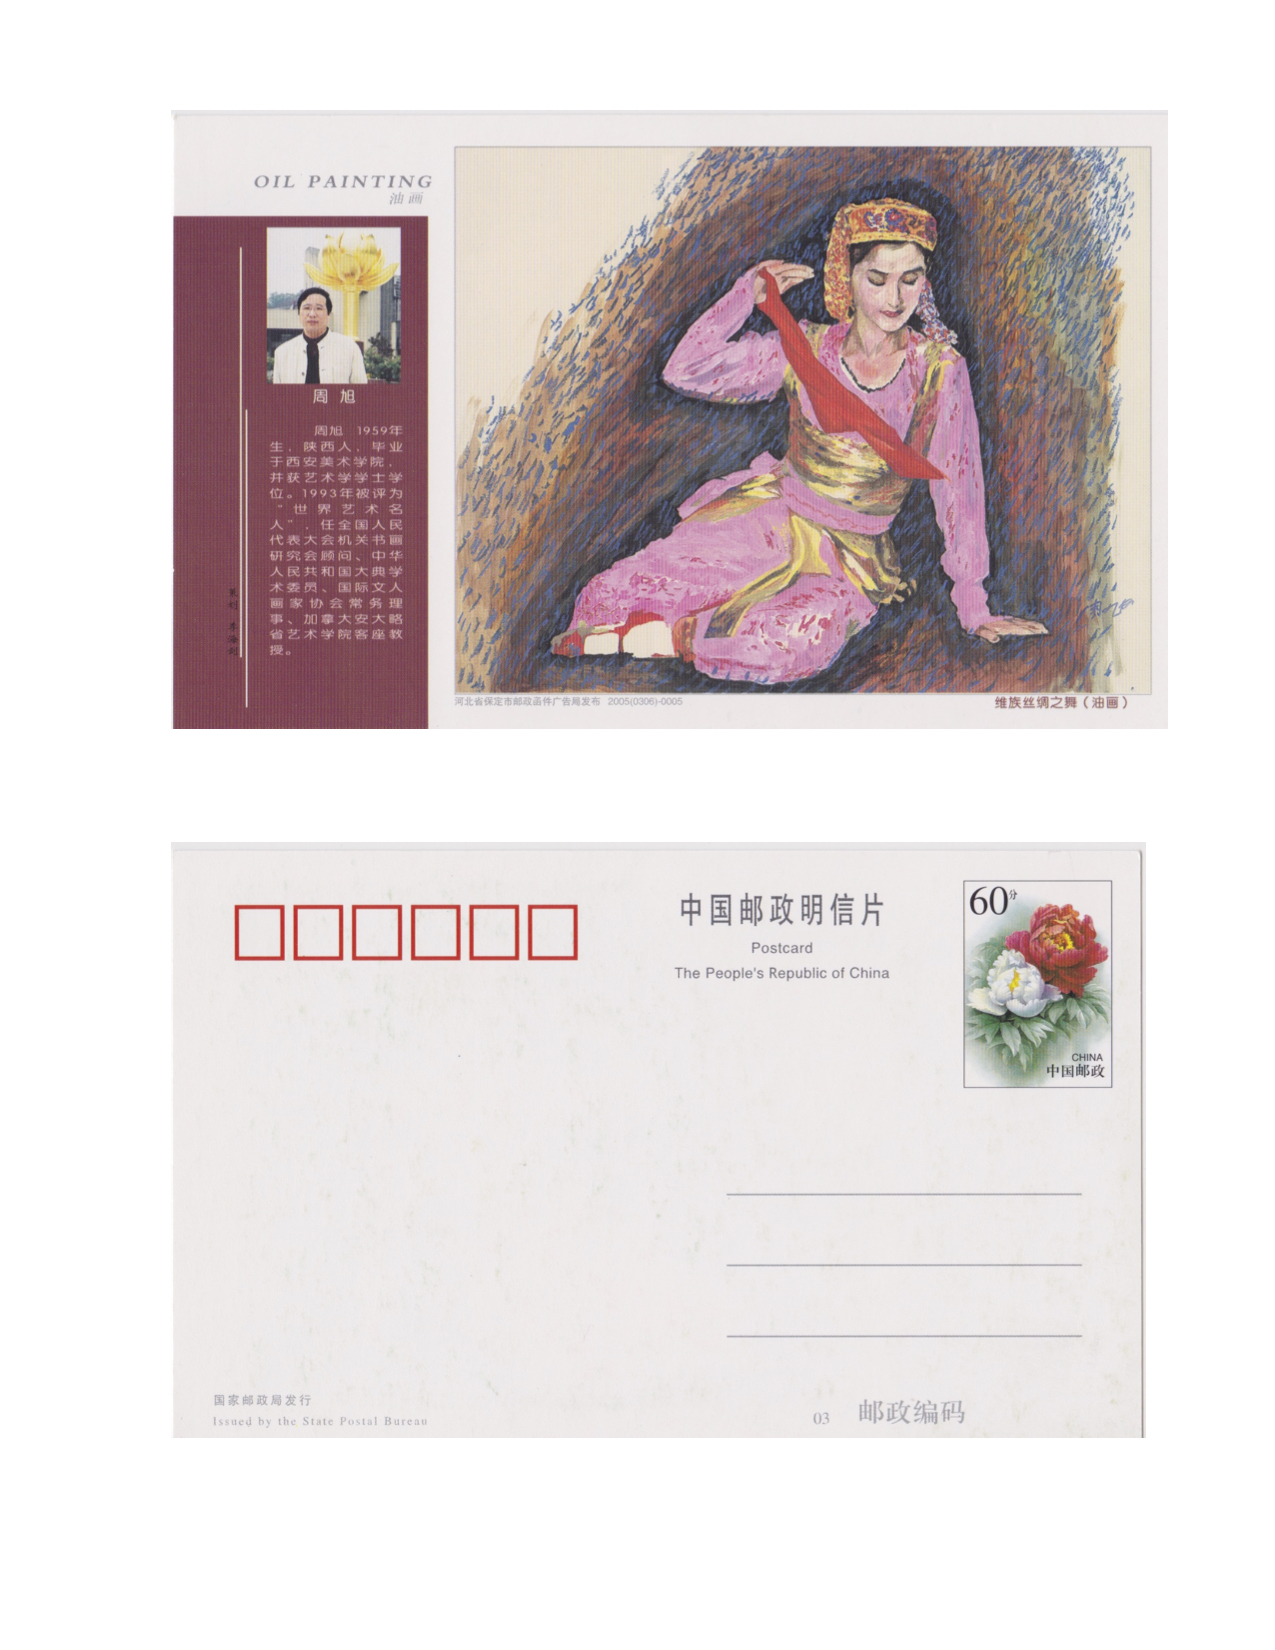 National Postcard with Zhou's artwor